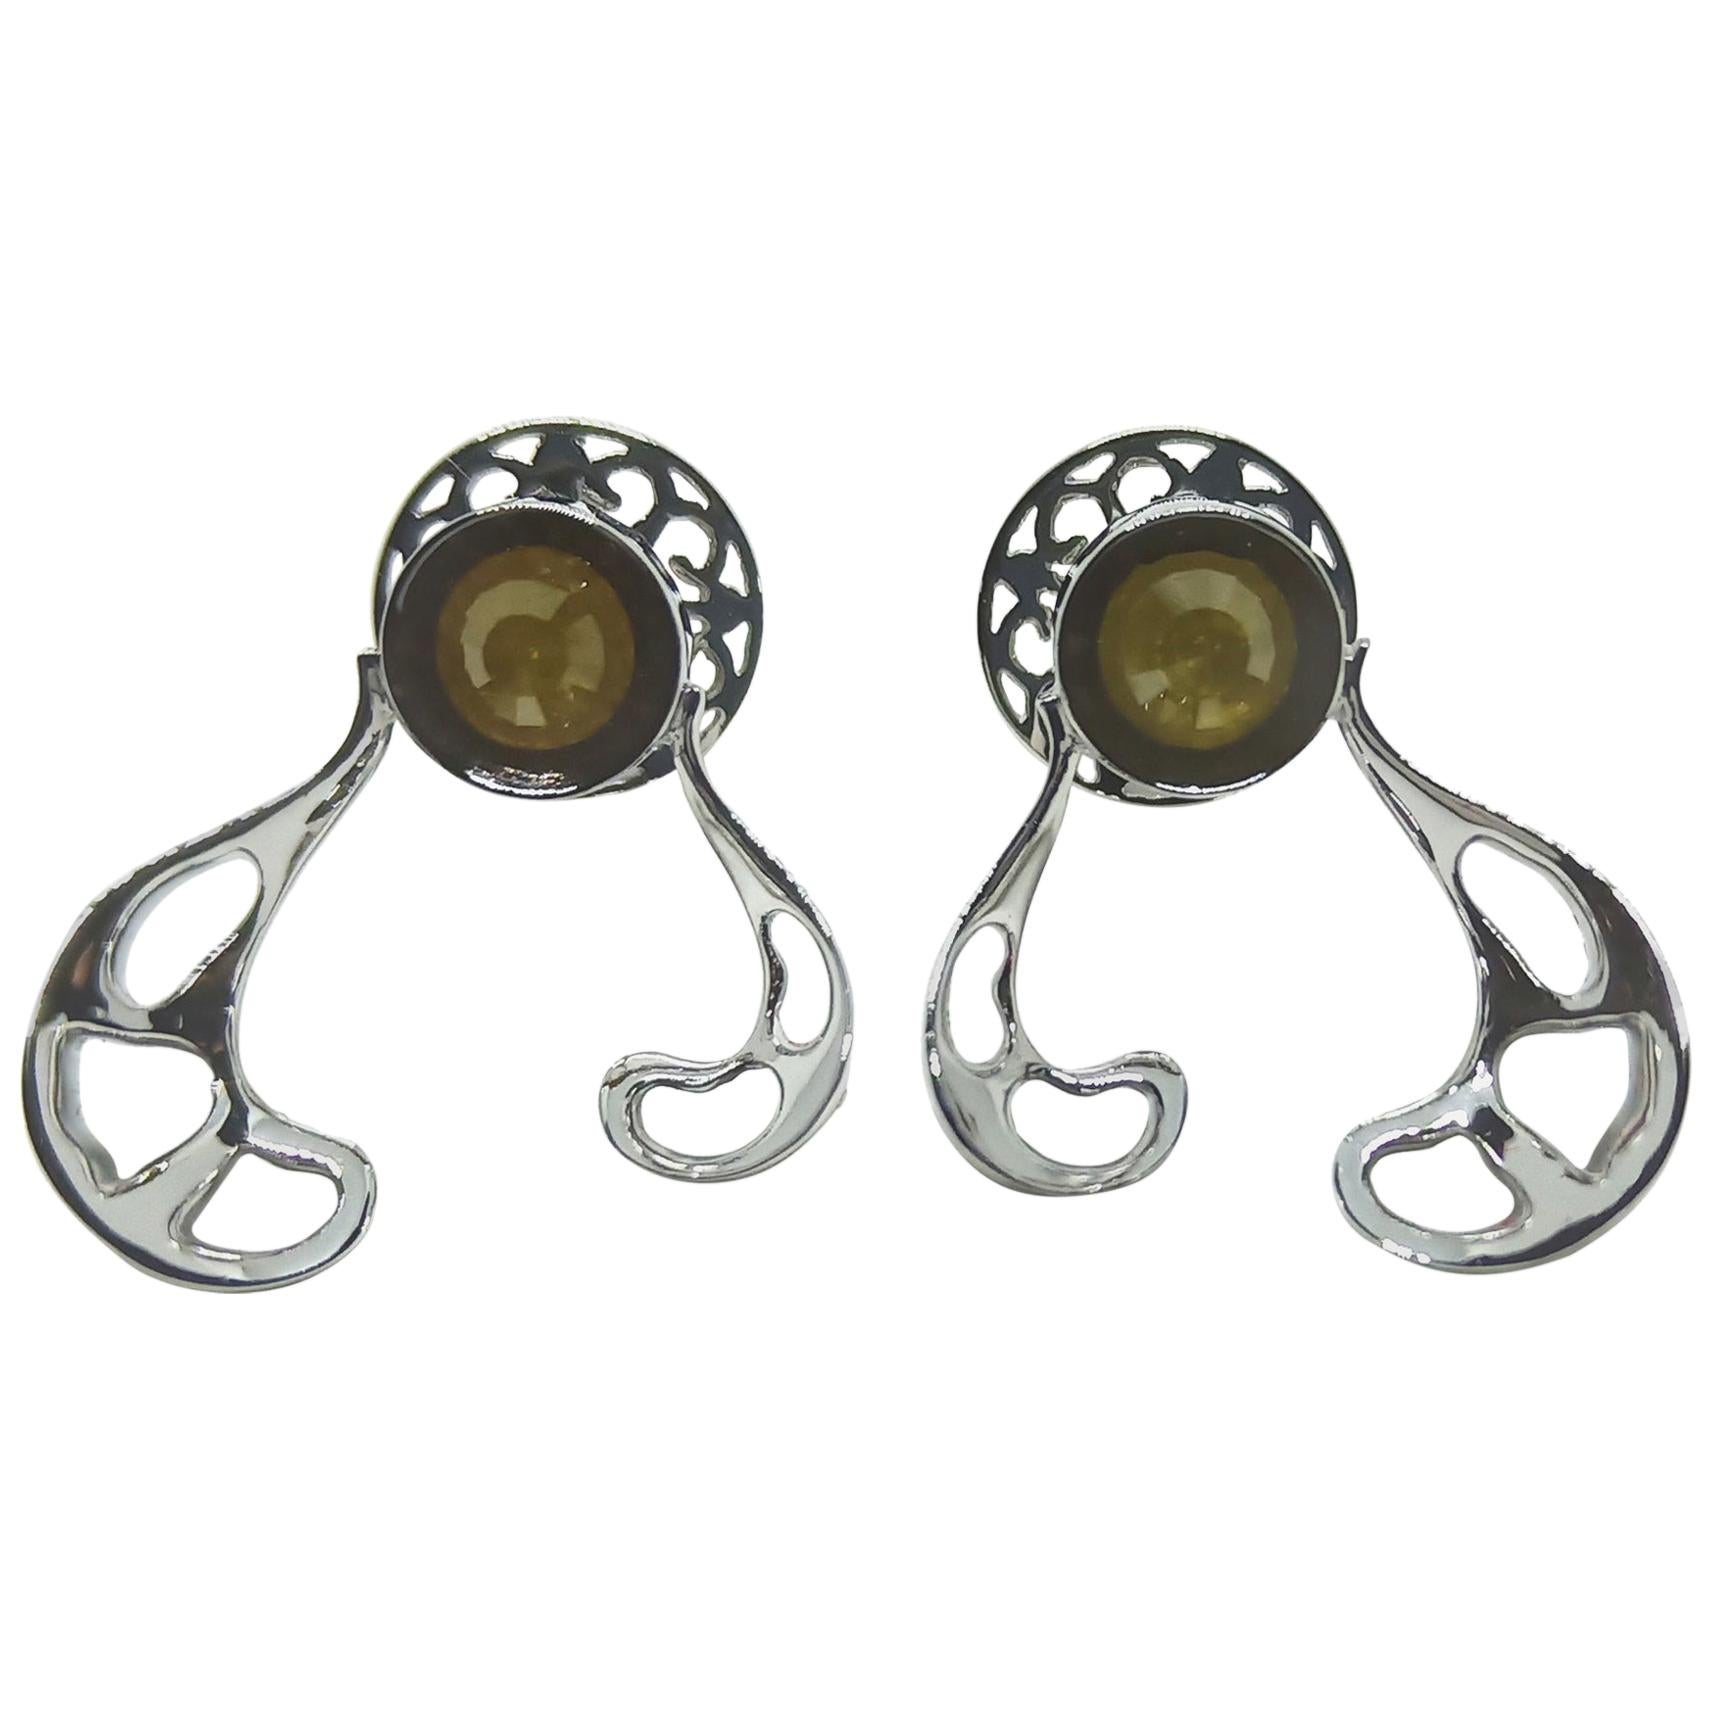 Want Facelift. Amaze Yourself with Contemporary Yellow Diamond Gold Earrings